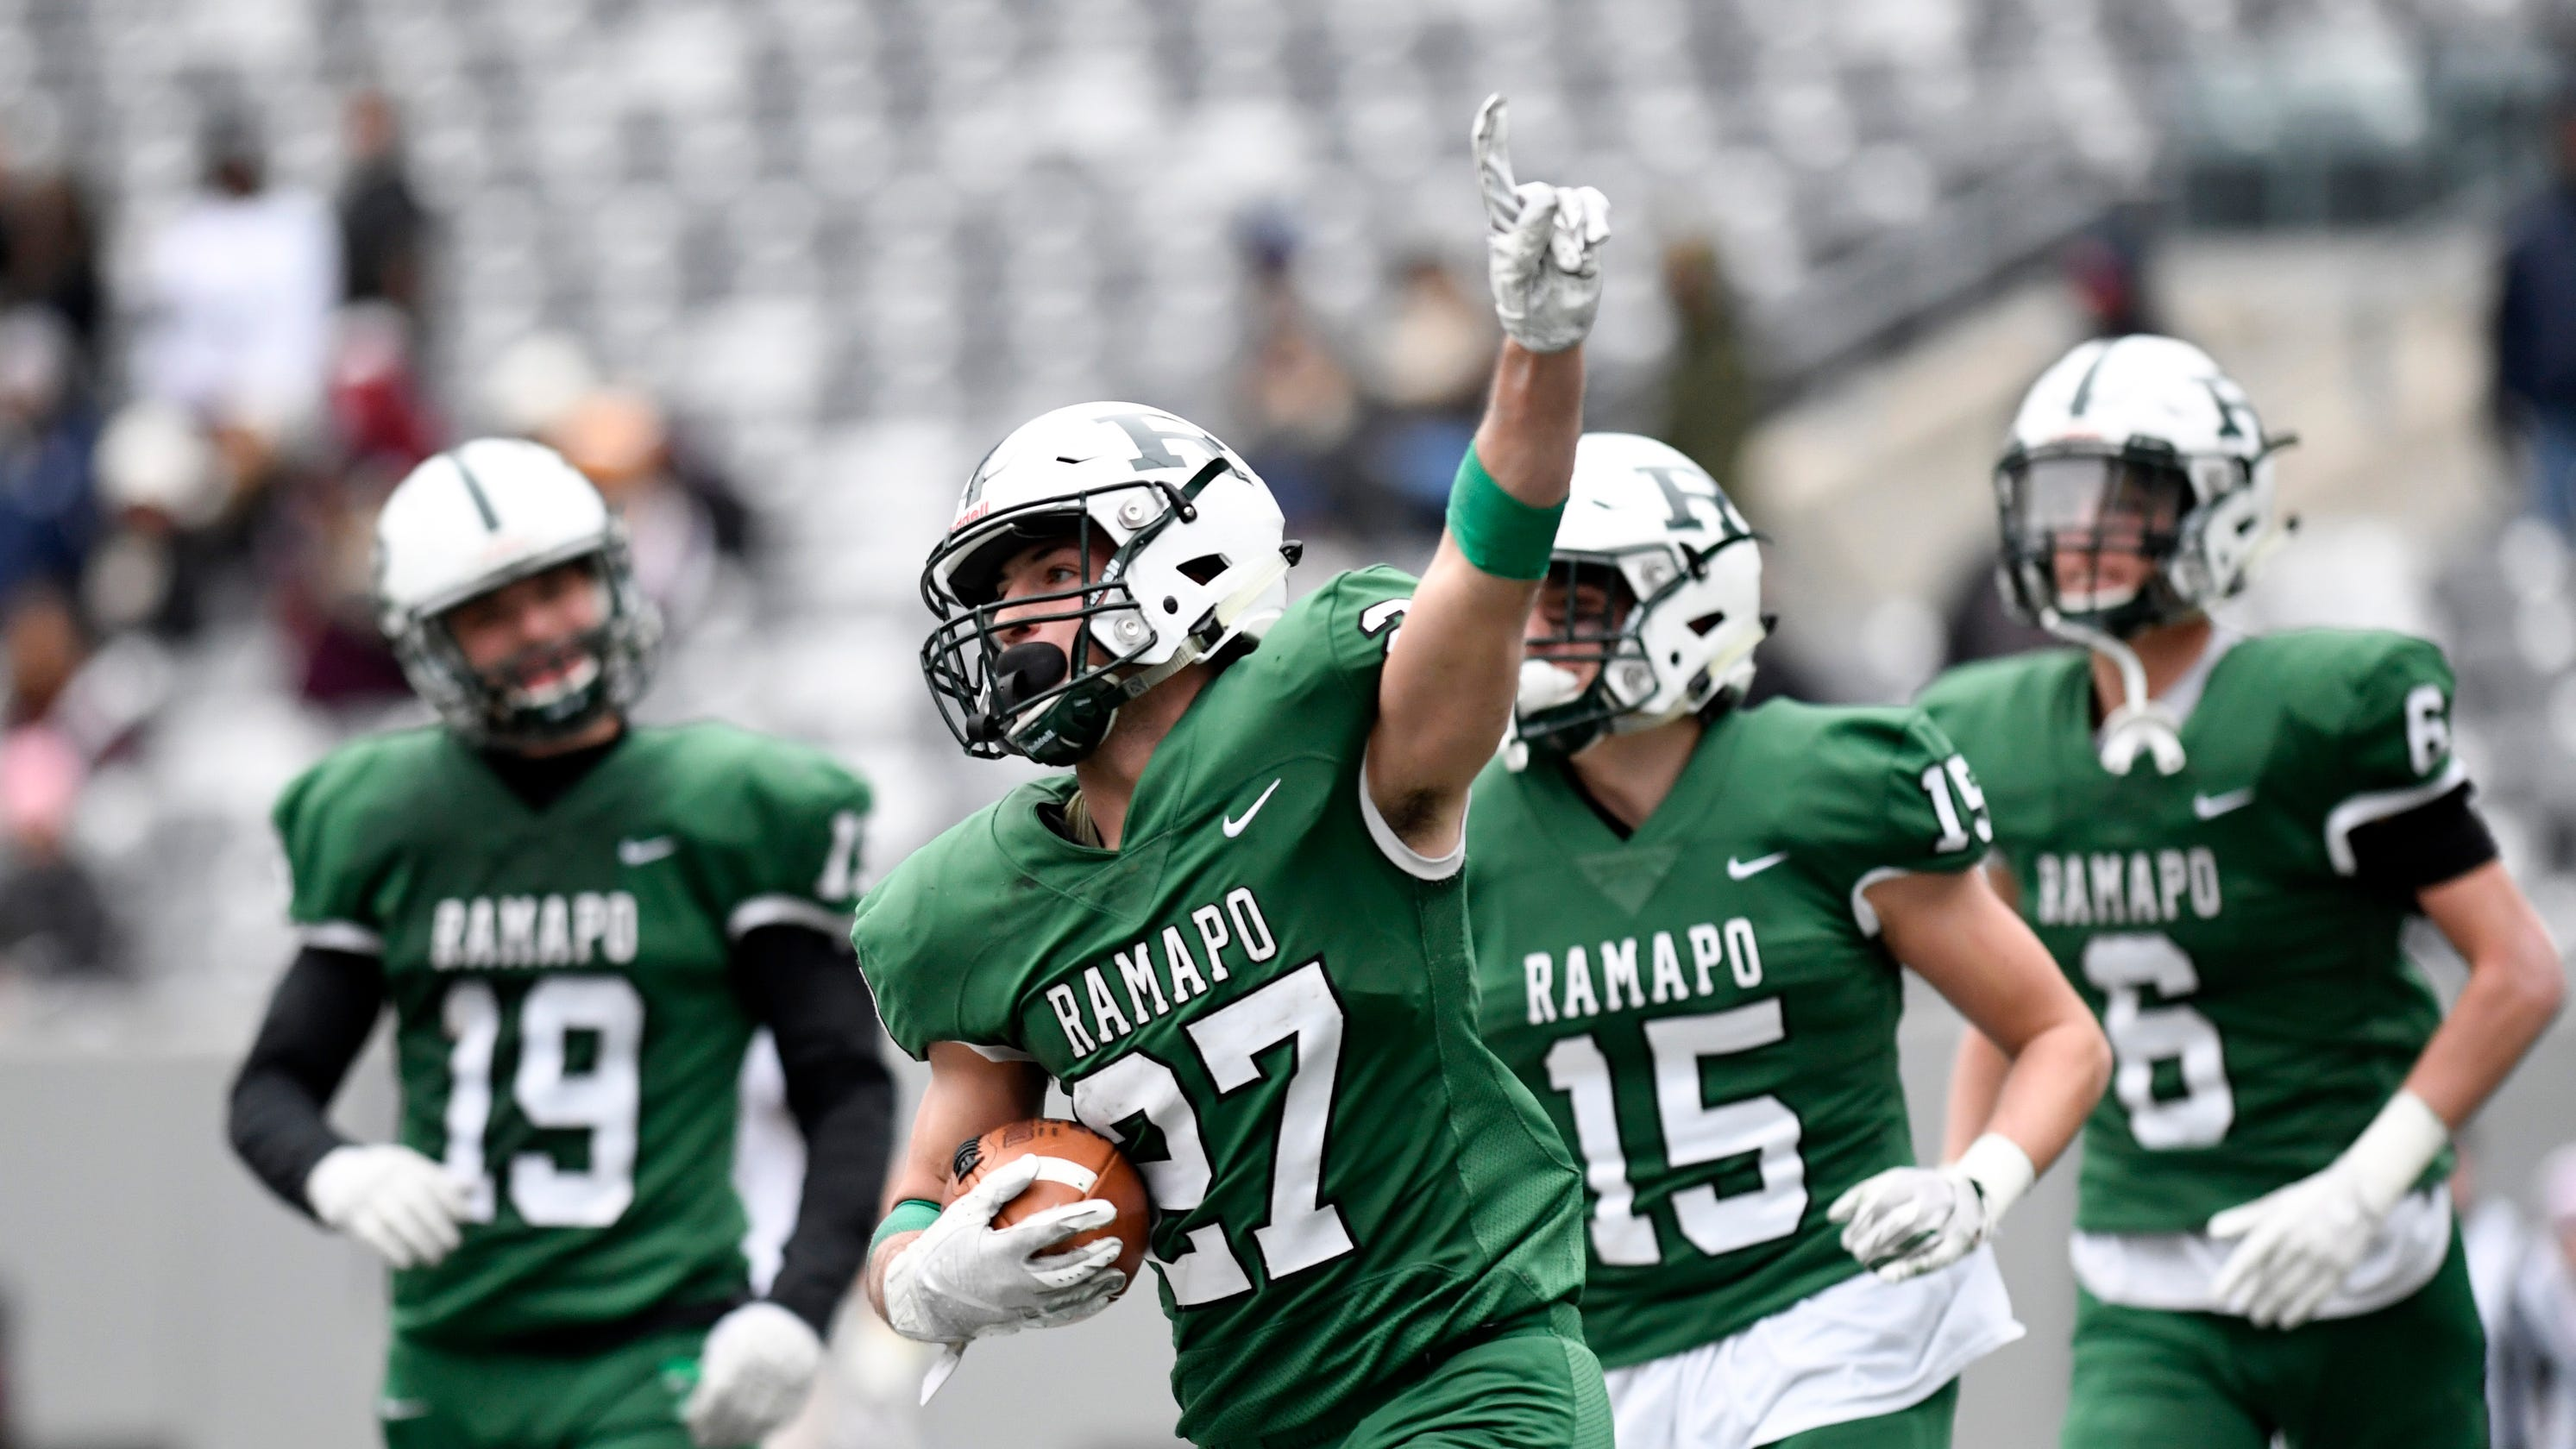 Ramapo football completes 13-0 undefeated season with bowl win over Summit bf786ddea